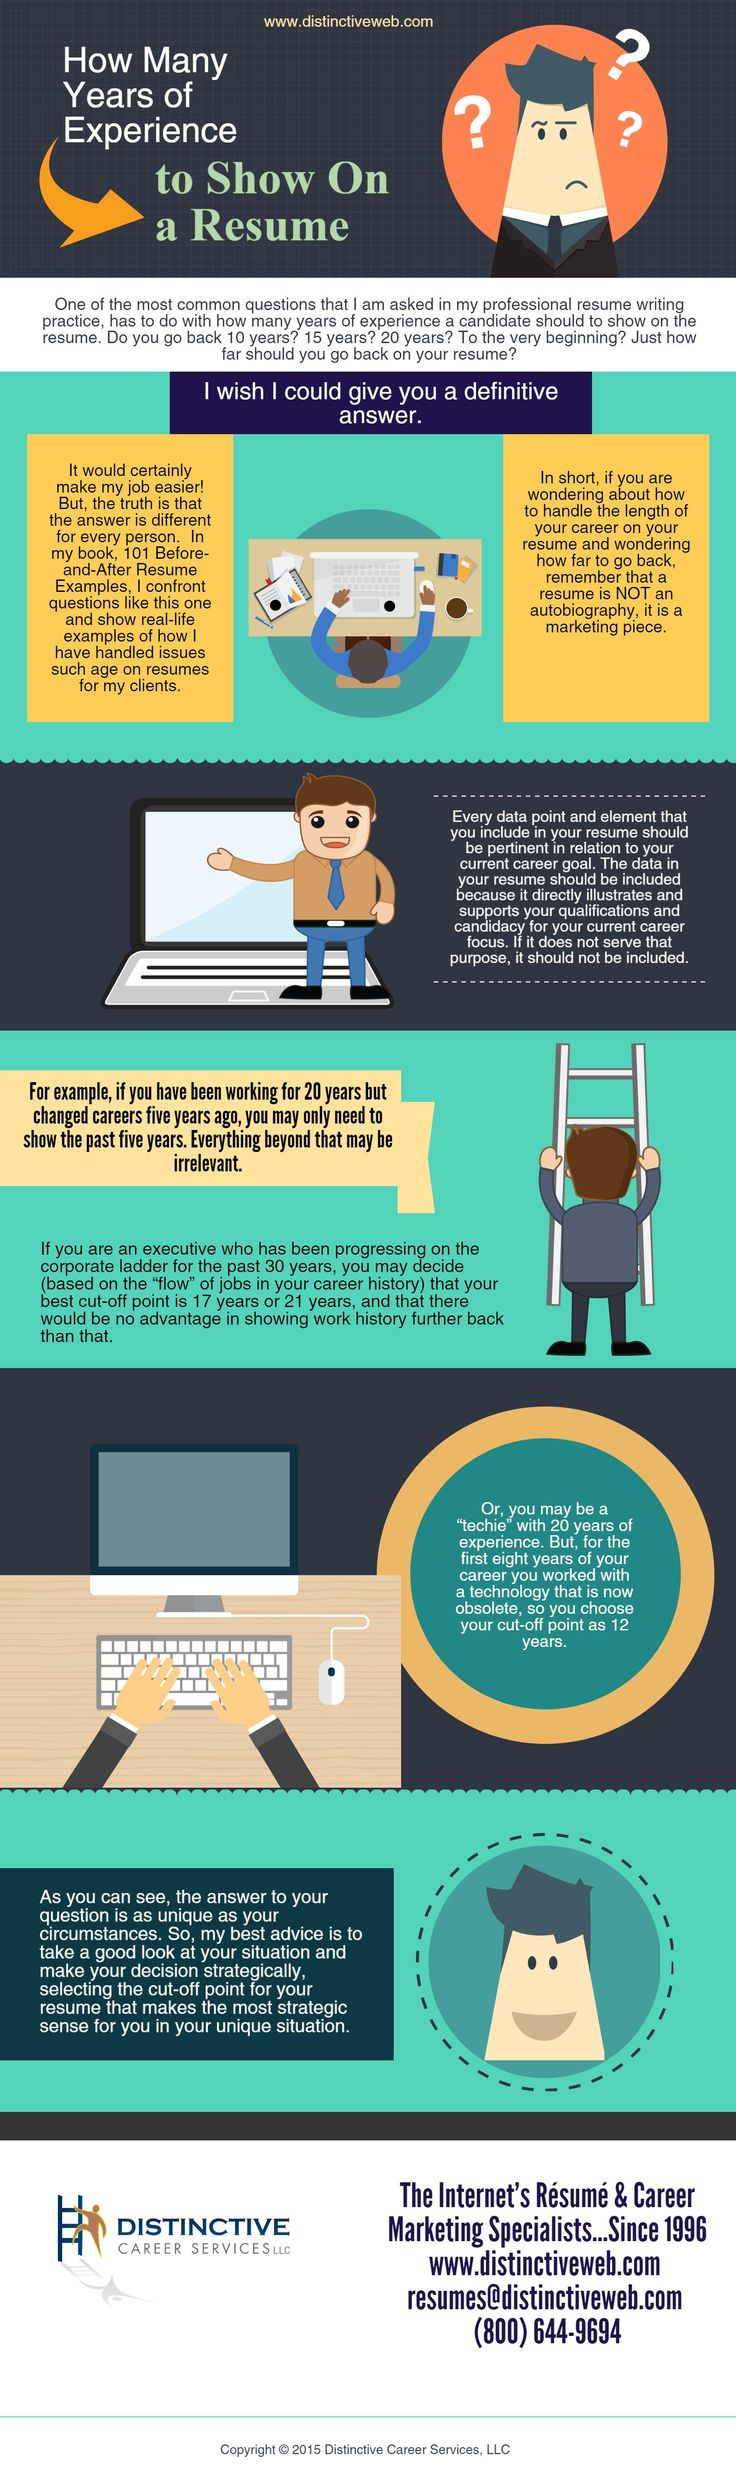 17 best images about career job search infographics hired search infographics detail counts career job on job search chances affect to out